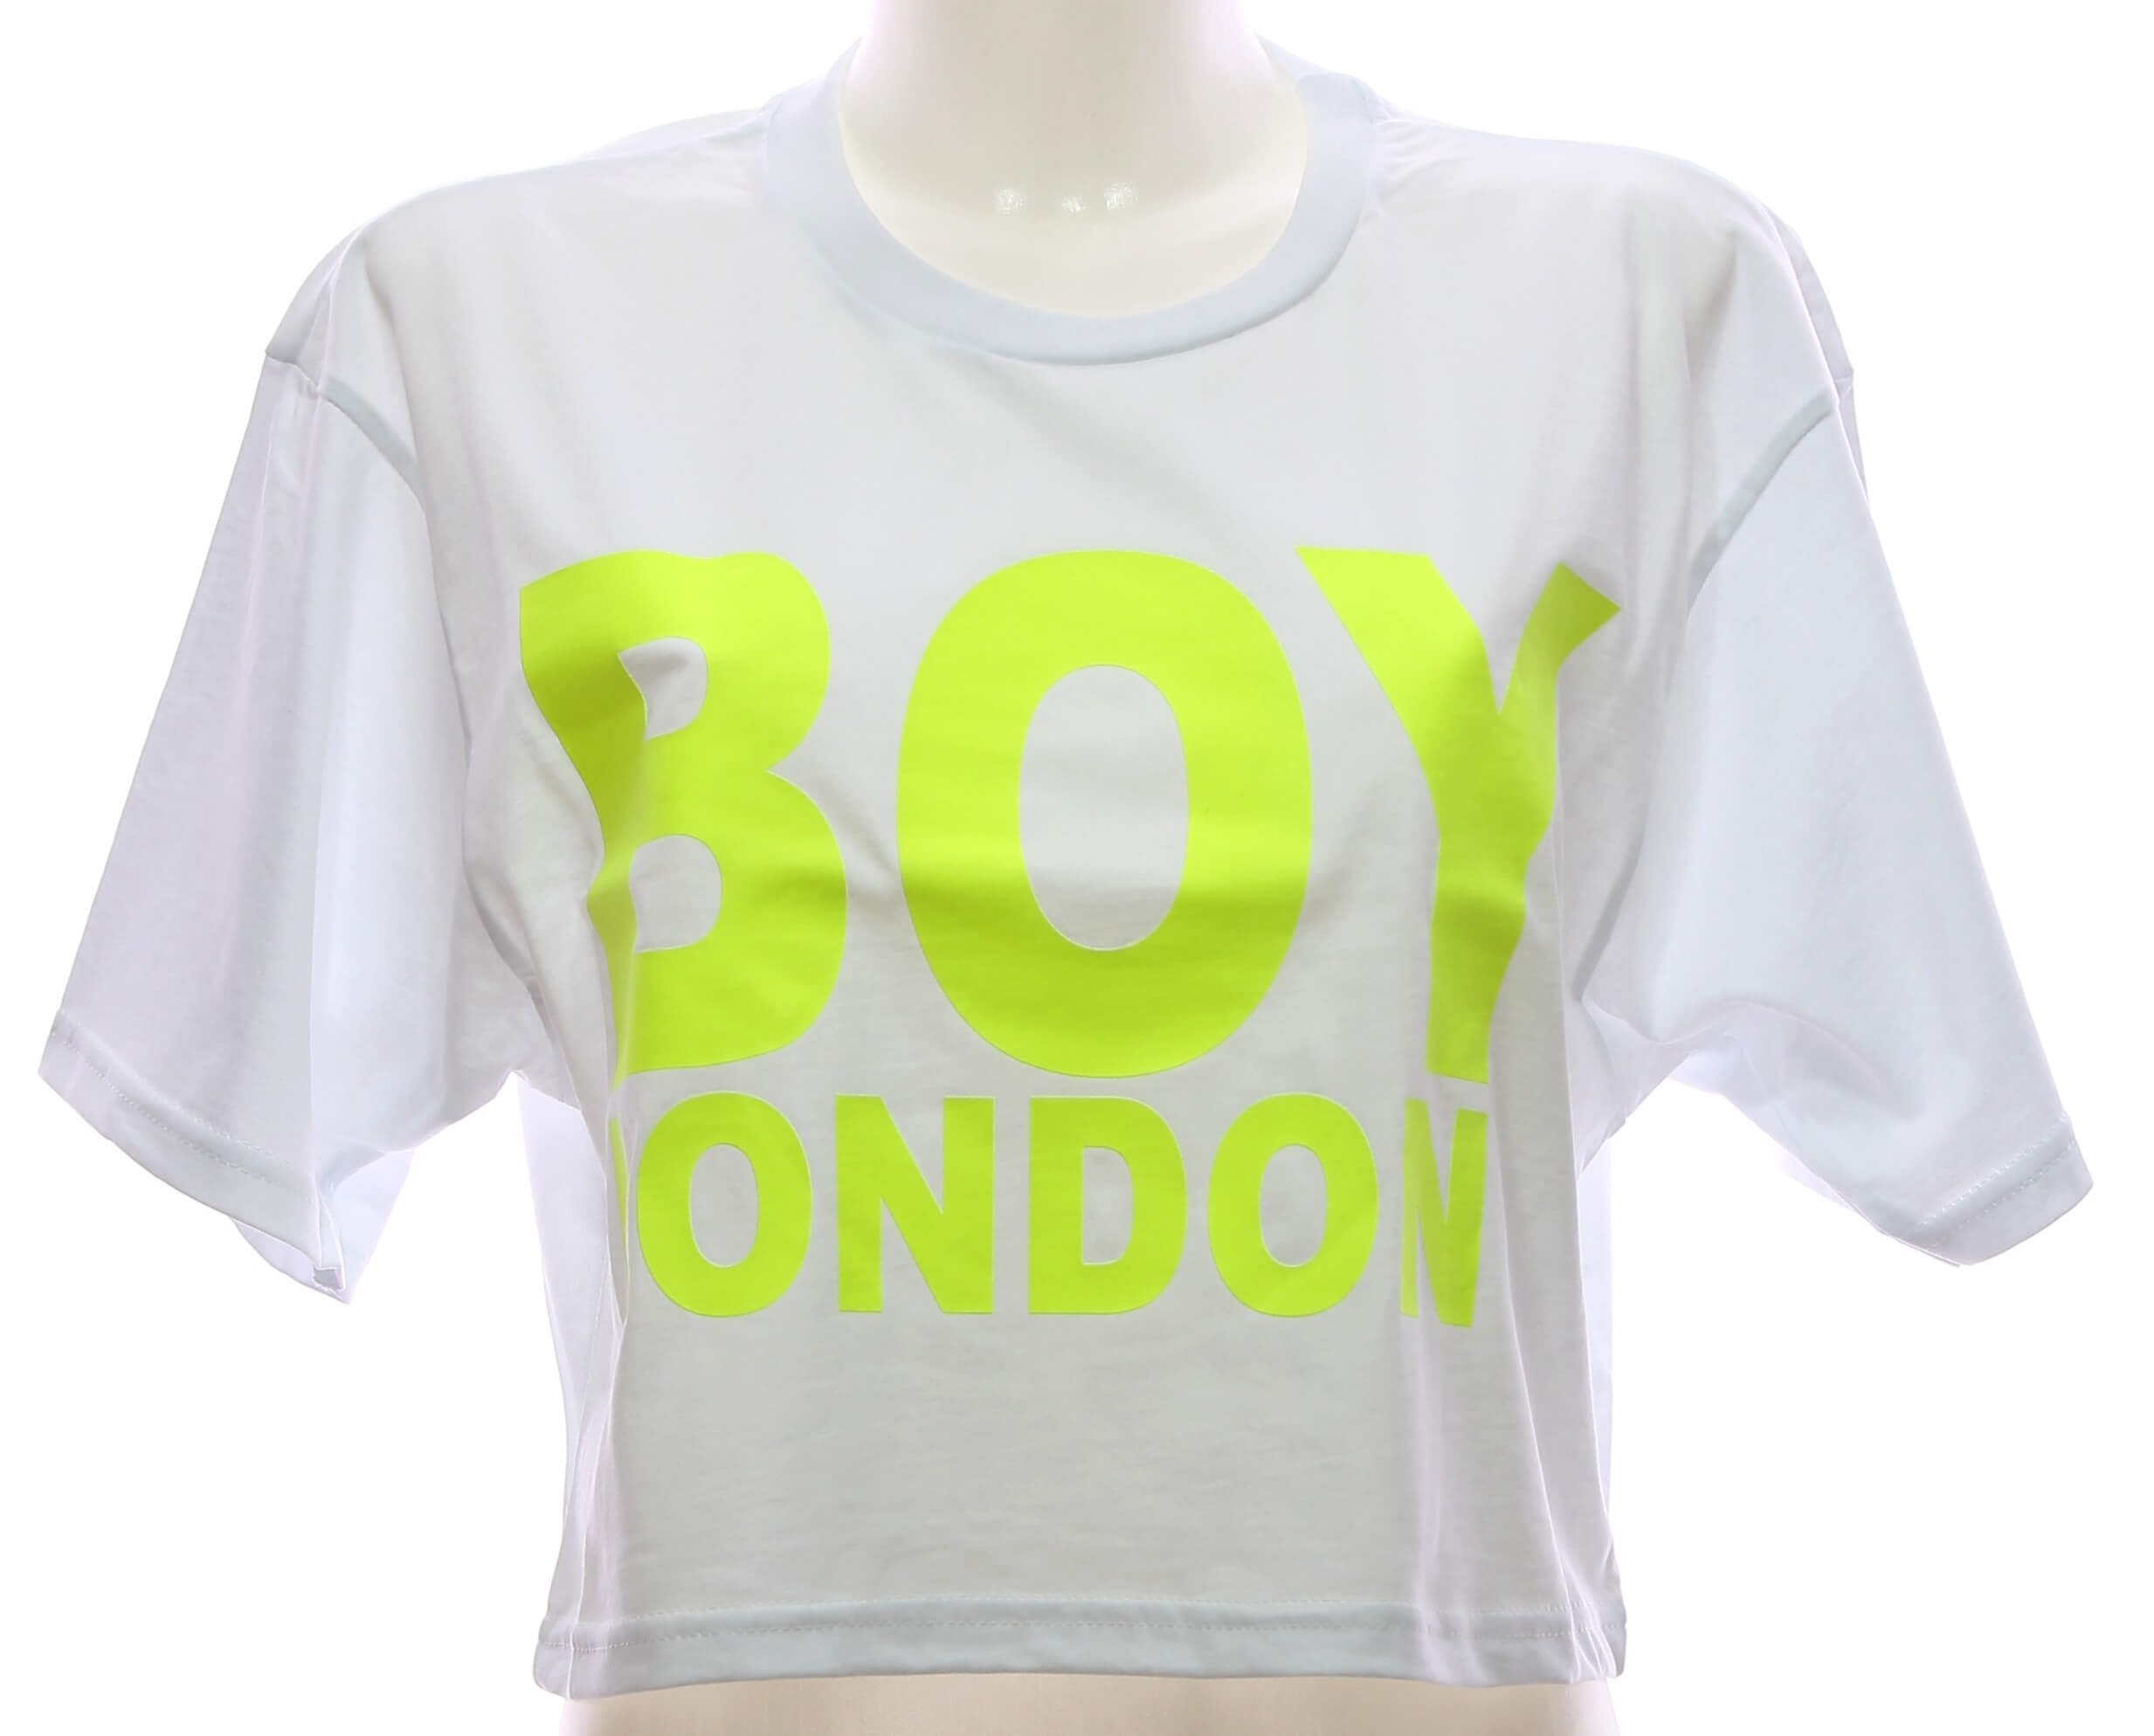 t-shirt boy london donna f8dadd4d9fe8